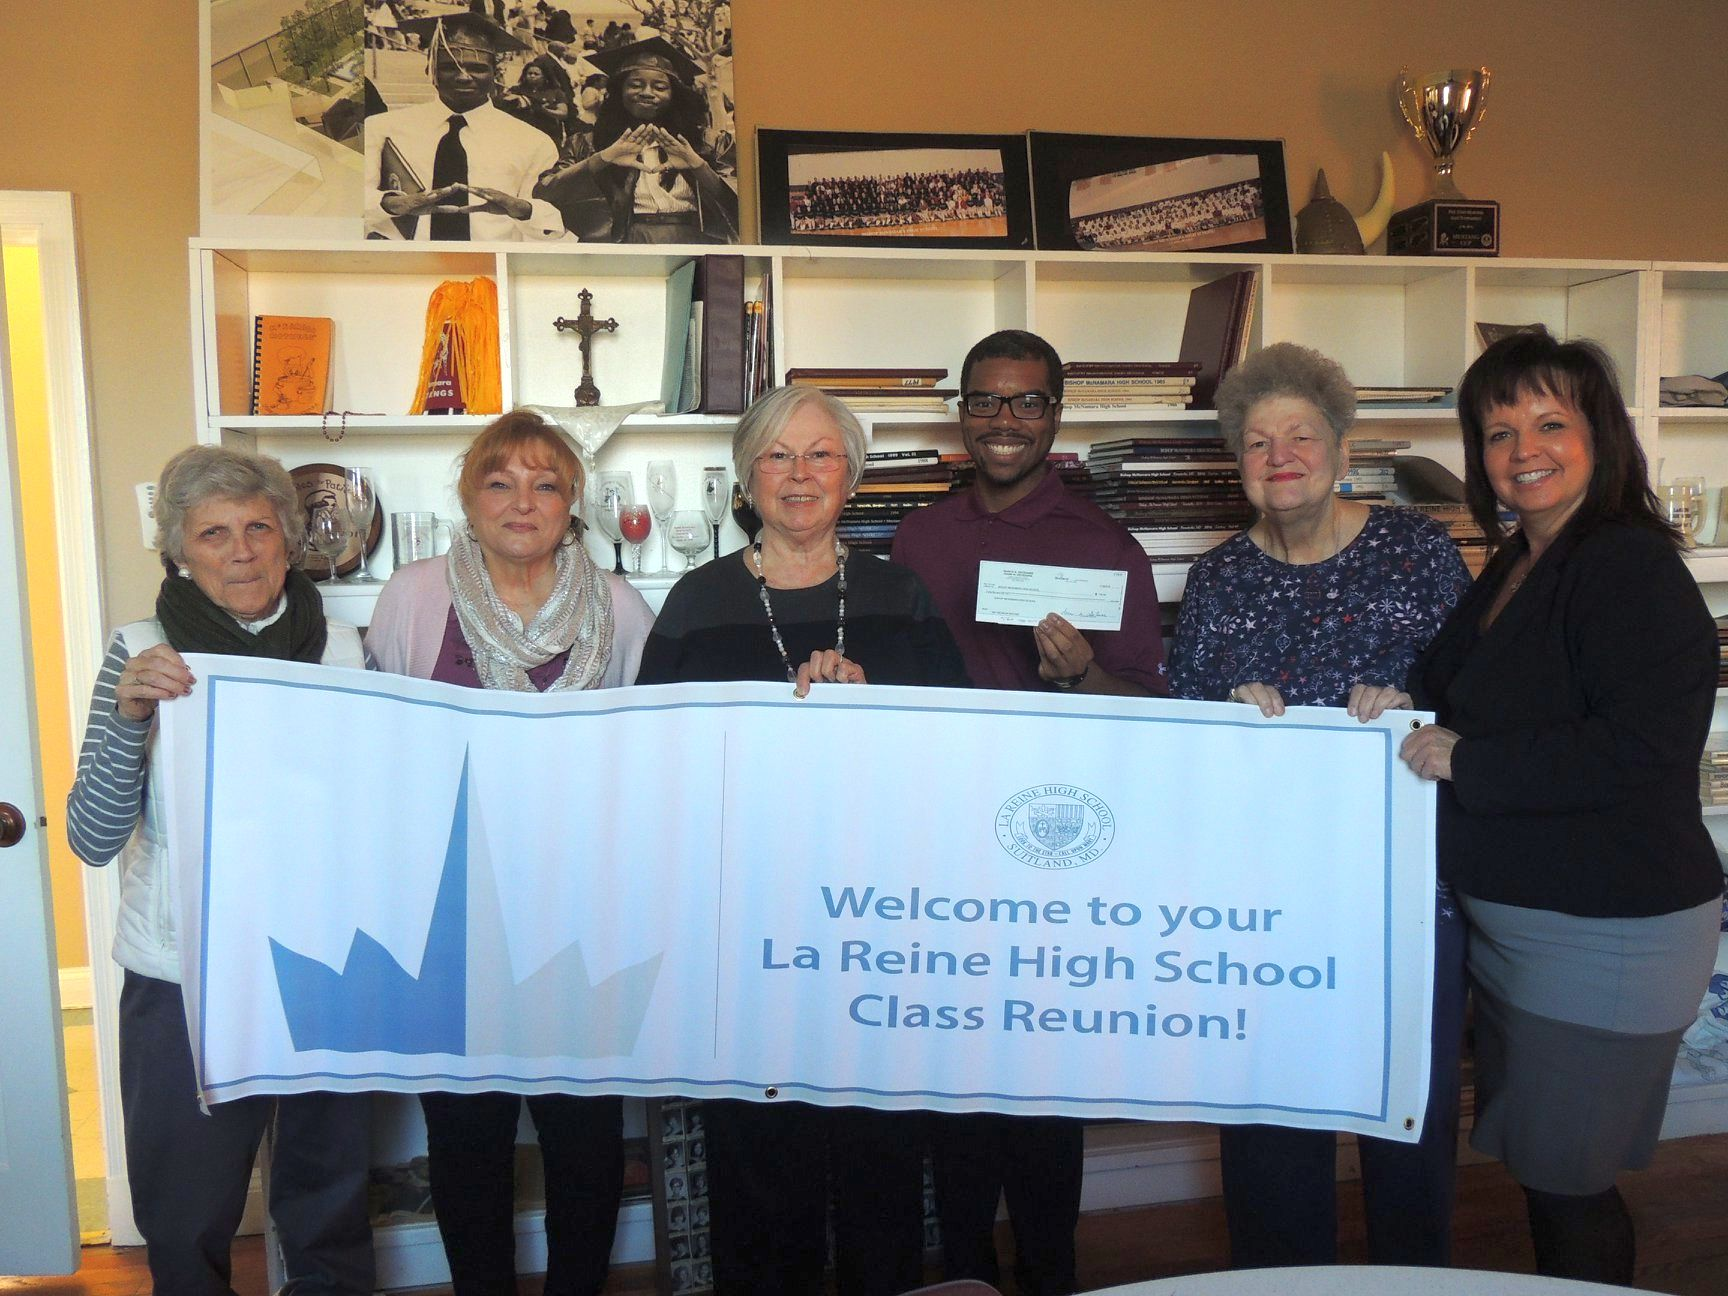 Pictured her with BMHS Principal Dr. Nigel Traylor and Development Director Sandy Mammano iare Mary Stokely LR '67, Diane M. DeCesaris LR '67, Diane Mangel LR '67 and Rosemary Treichel LR '67